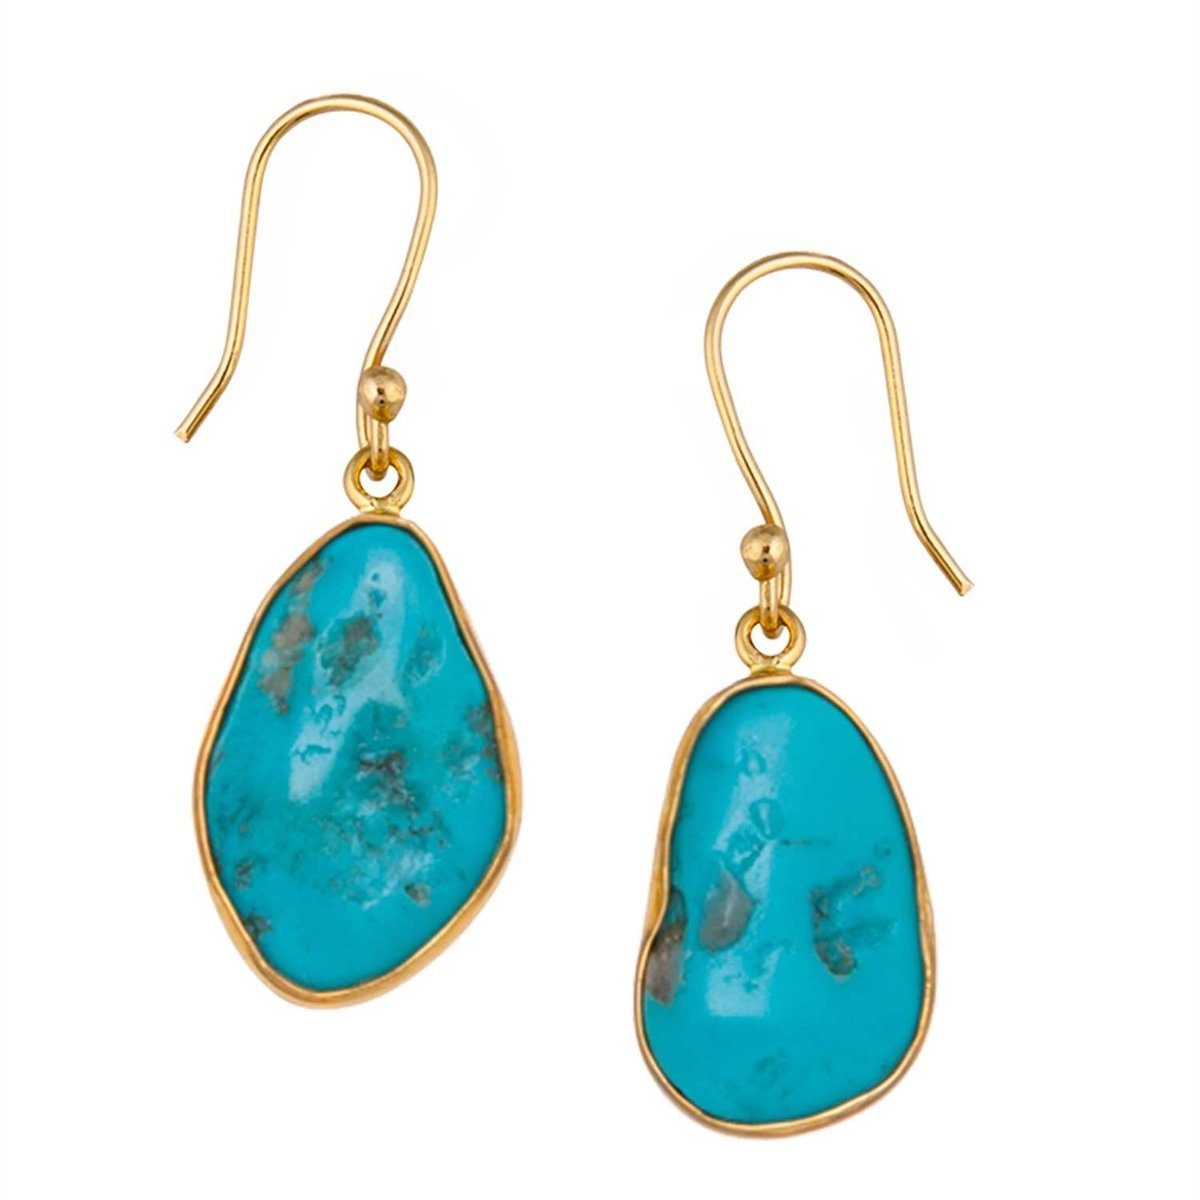 Alchemia Sleeping Beauty Turquoise Freeform Earrings